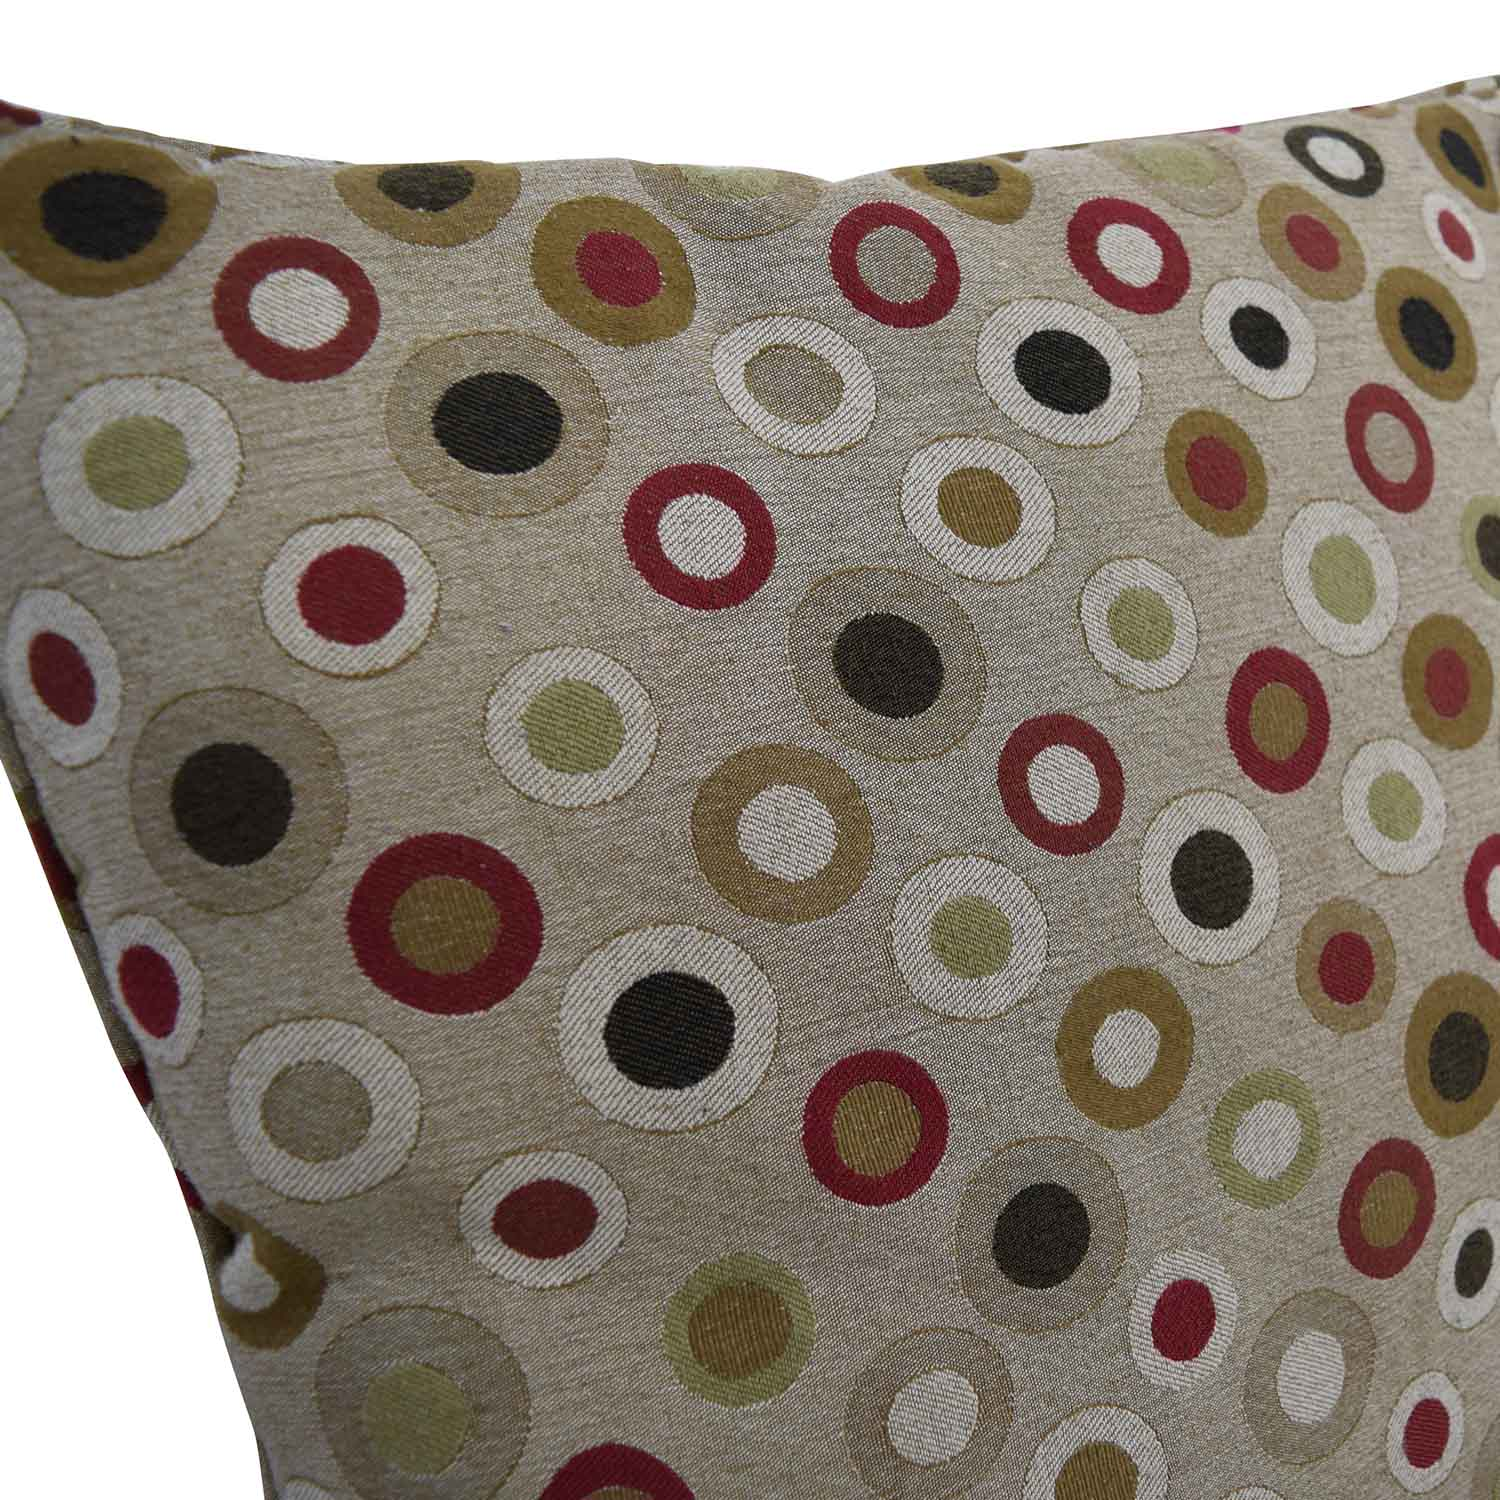 Tan with Multi-Colored Circles Toss Pillows for sale